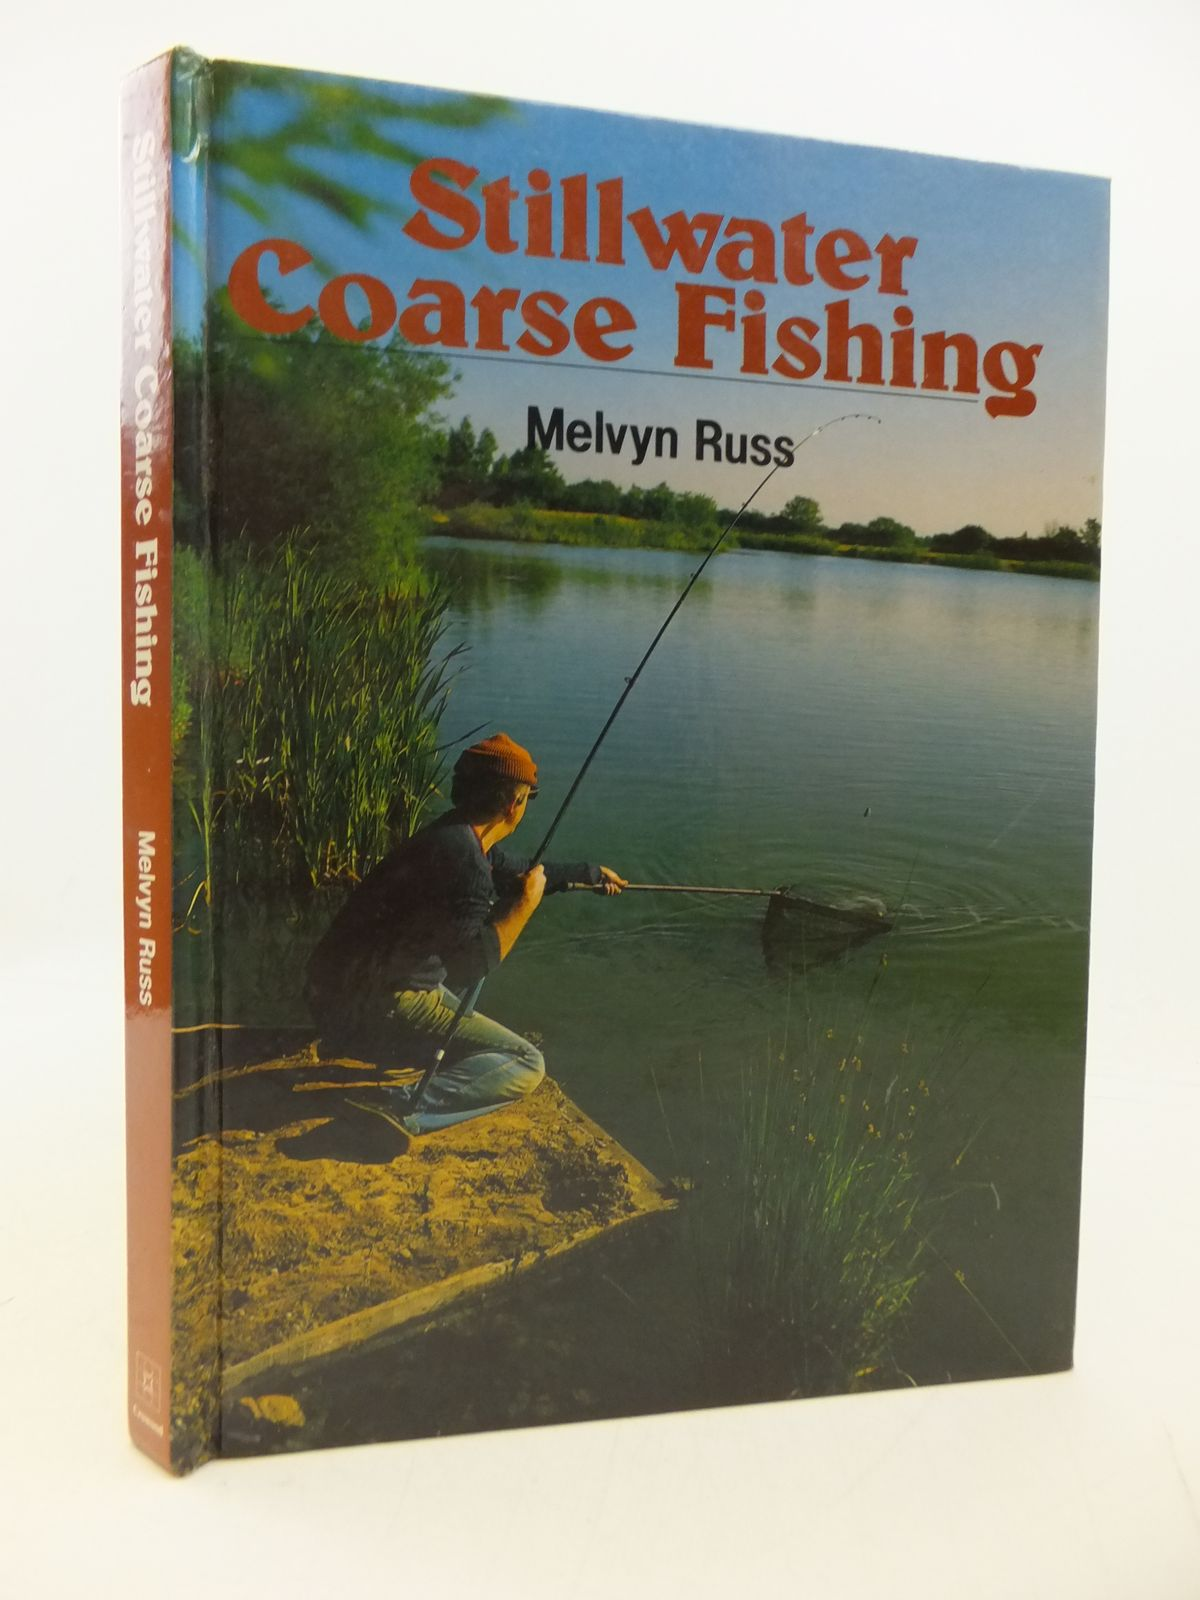 Photo of STILLWATER COARSE FISHING written by Russ, Melvyn published by The Crowood Press (STOCK CODE: 1808283)  for sale by Stella & Rose's Books